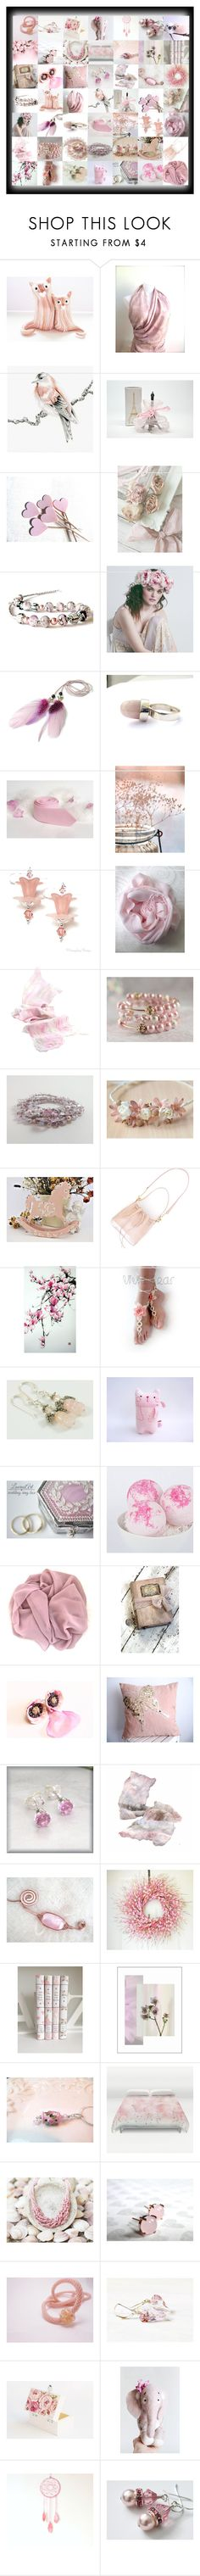 """Pretty in Pink"" by andreadawn1 ❤ liked on Polyvore featuring Cadeau and PINK ANGEL"